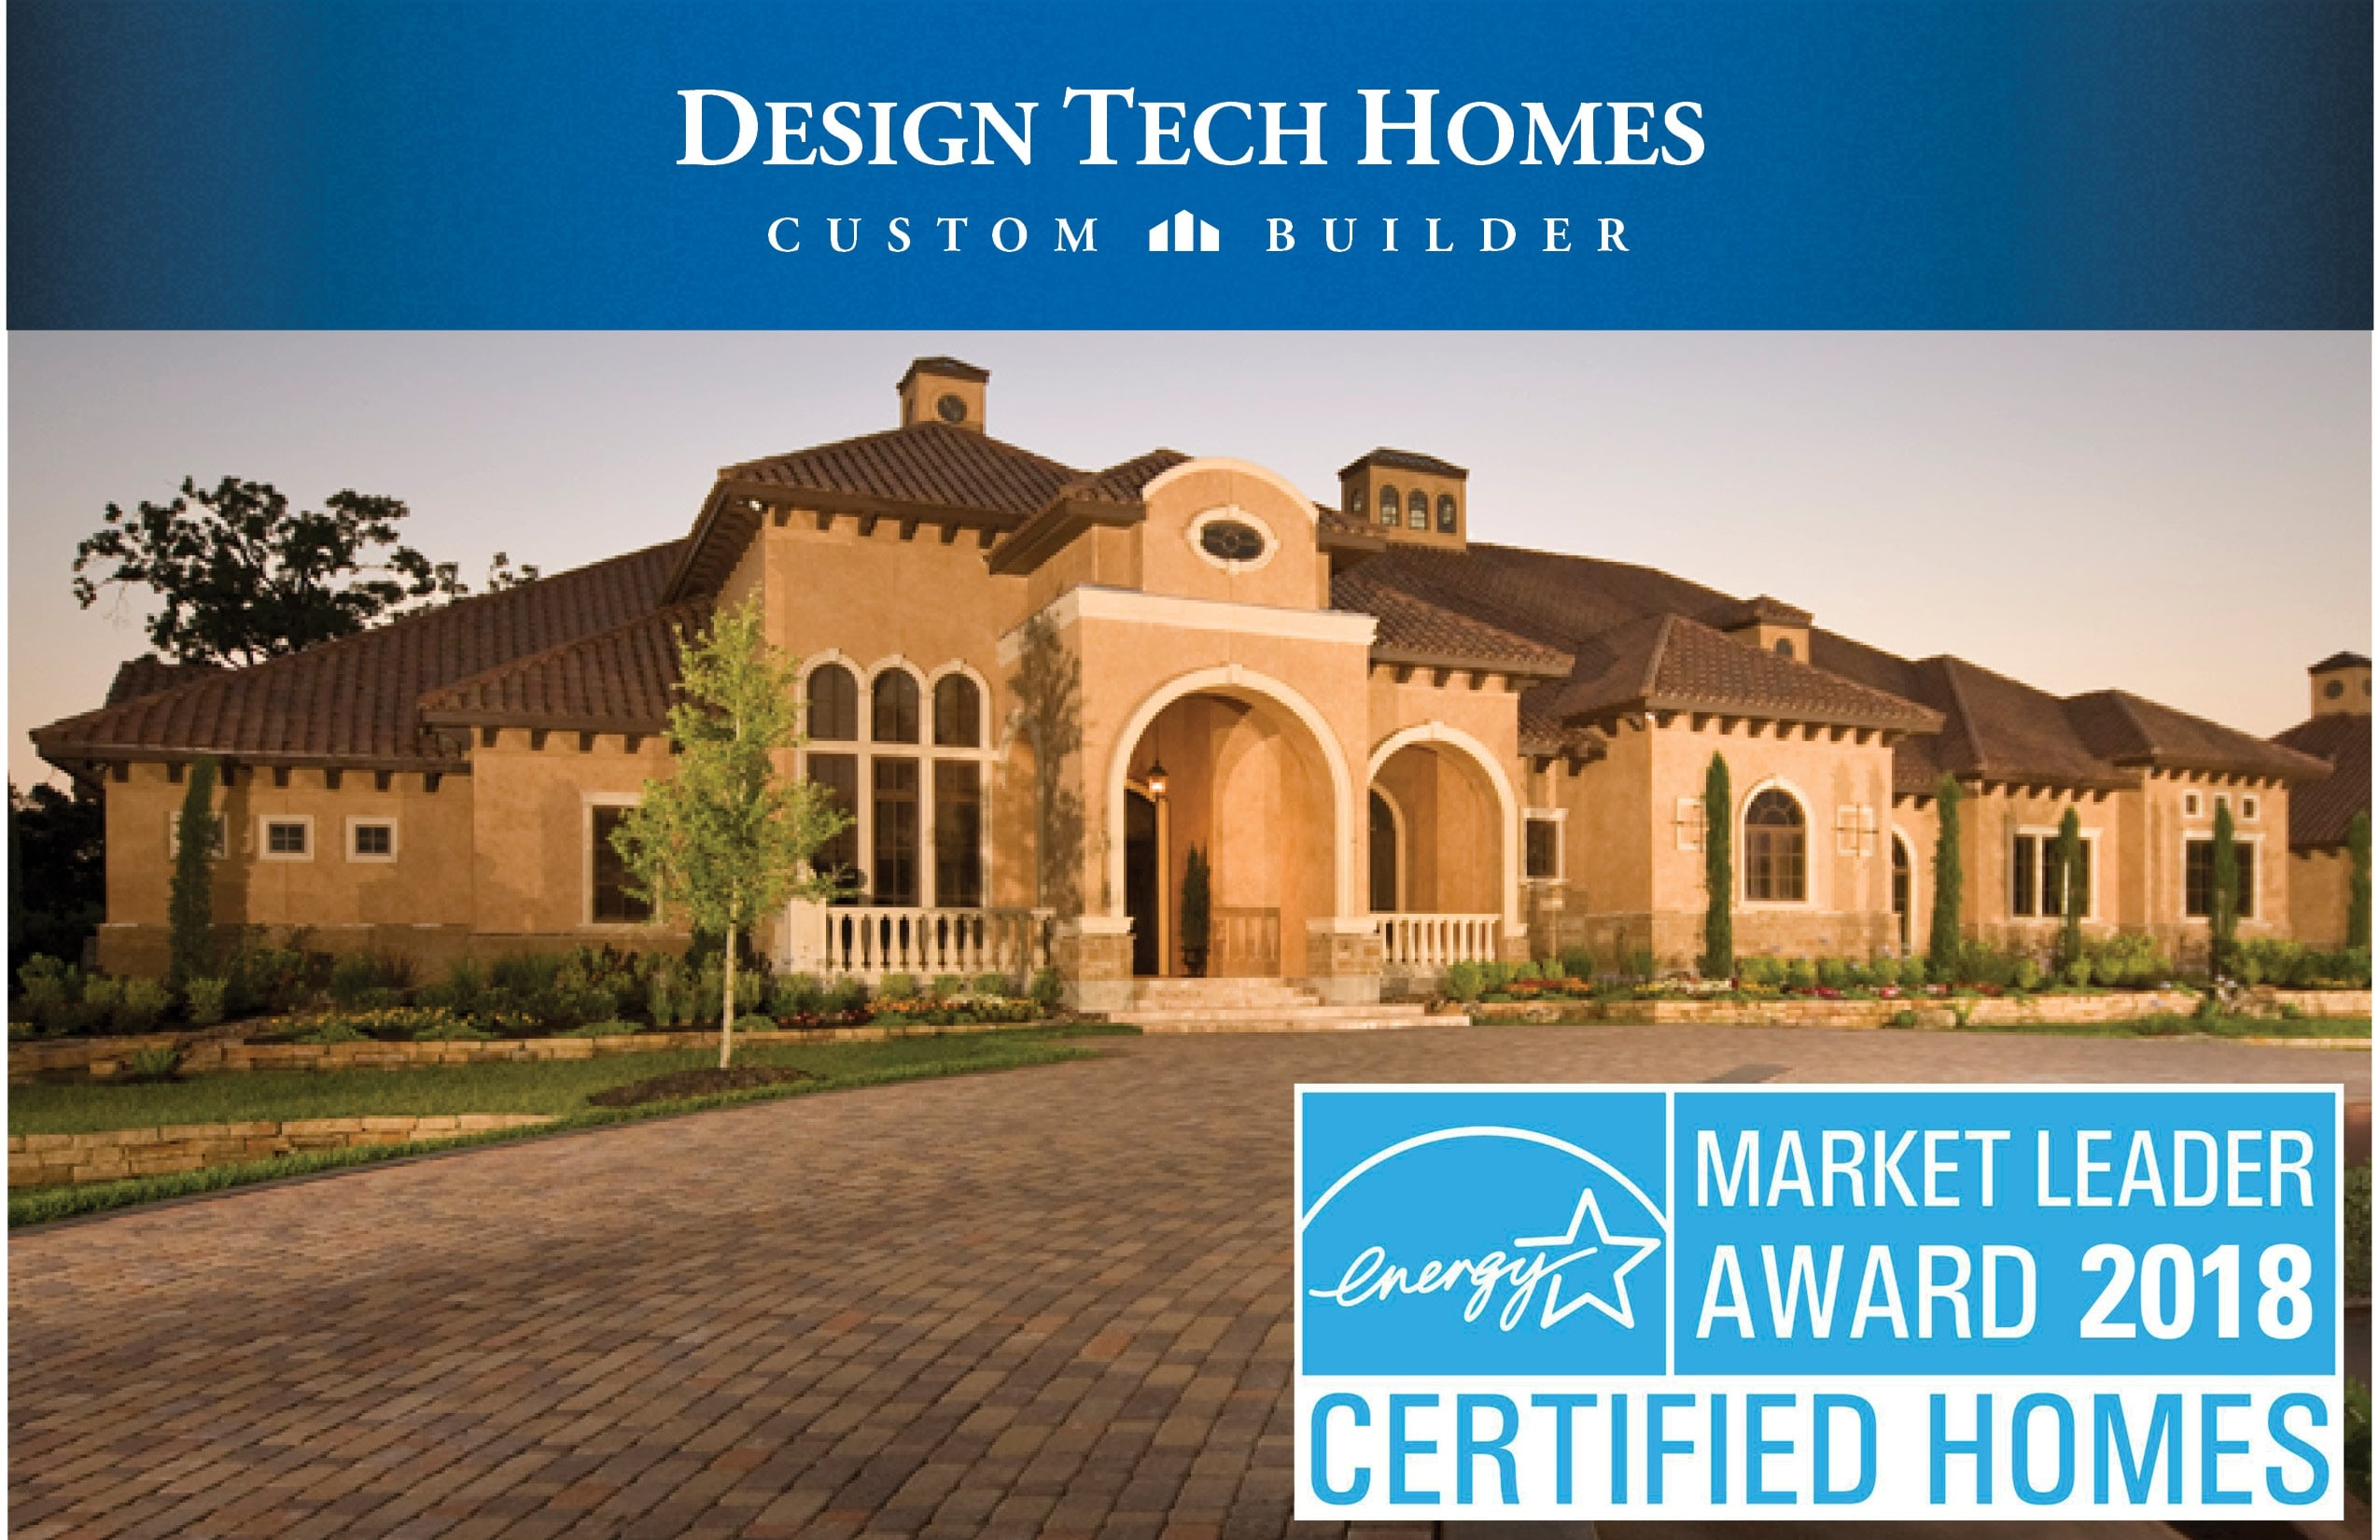 Design Tech Homes Named Recipient of the 2018 ENERGY STAR Certified Homes Market Leader Award 1